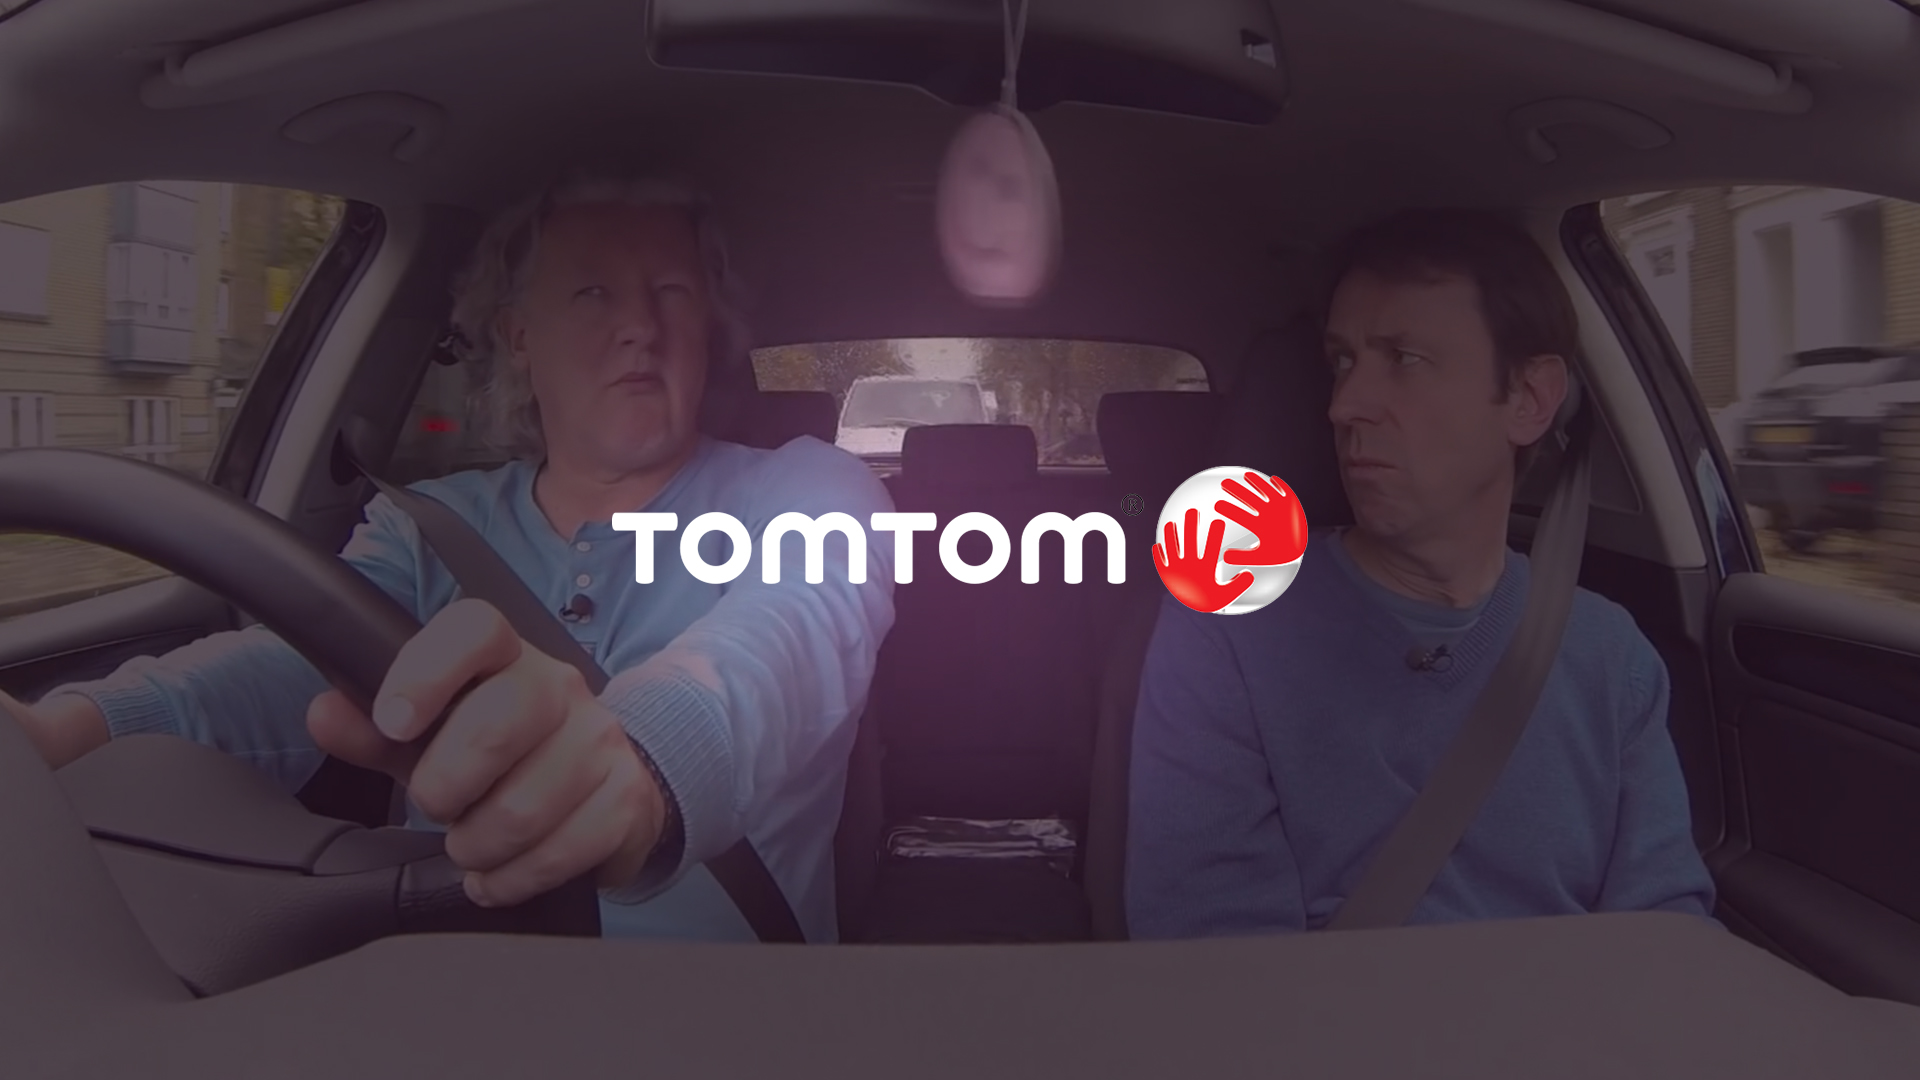 THE TOMTOM